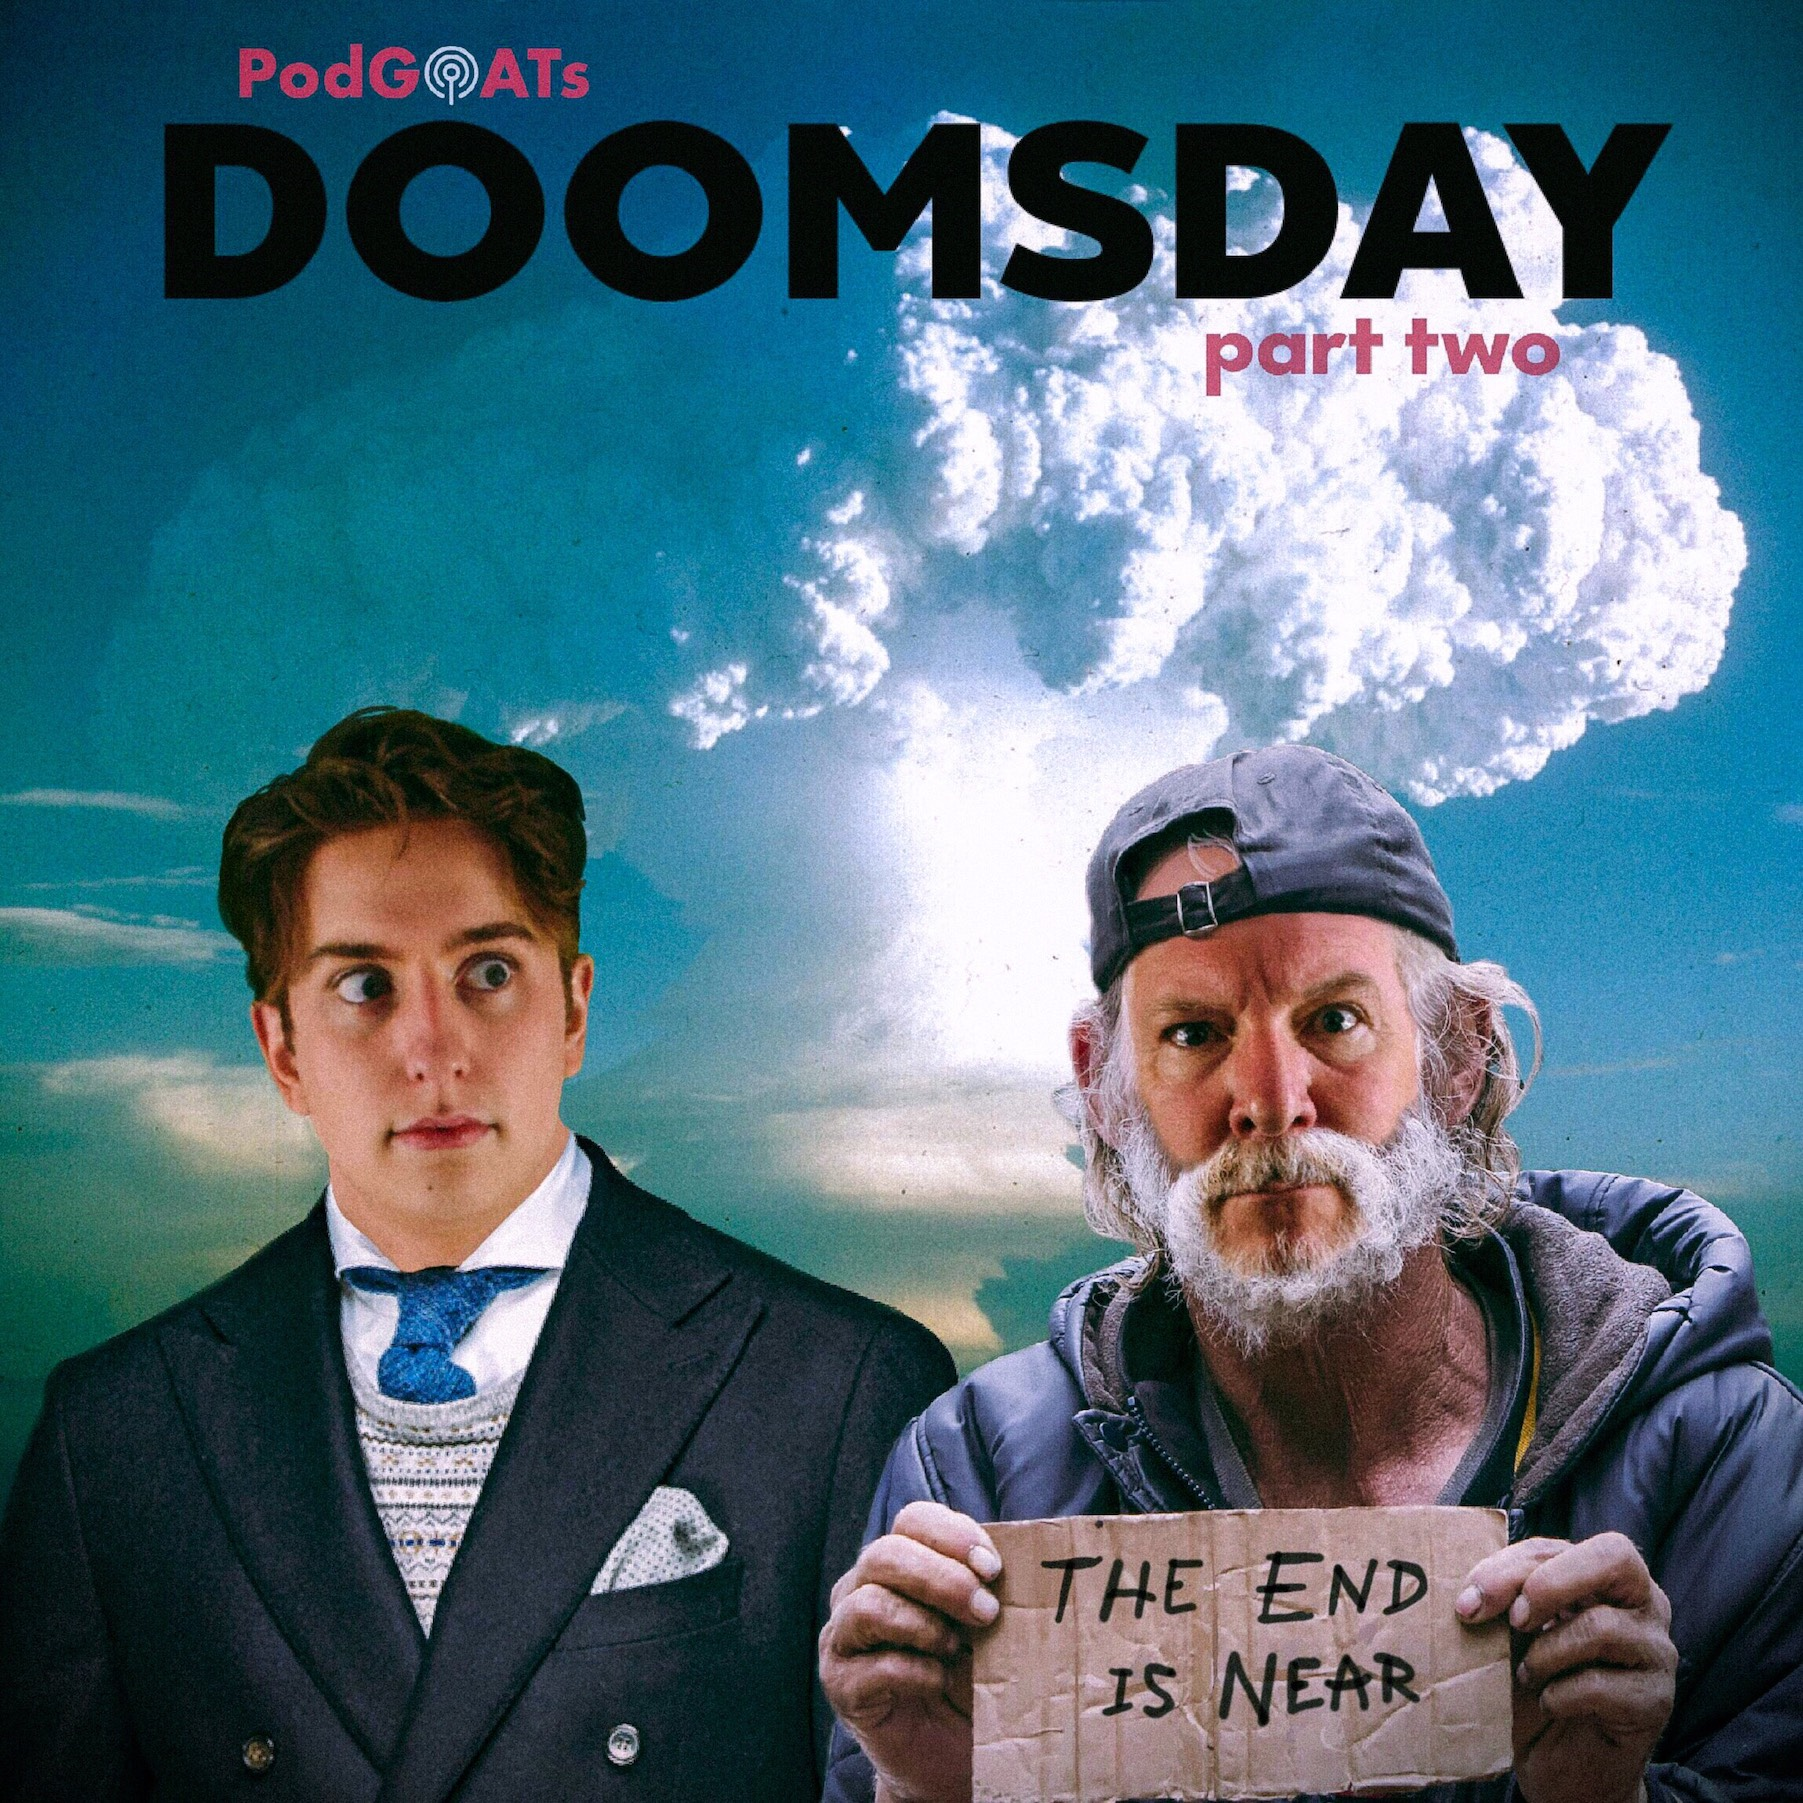 Doomsday-Part 2: Eight Ways the World Could End